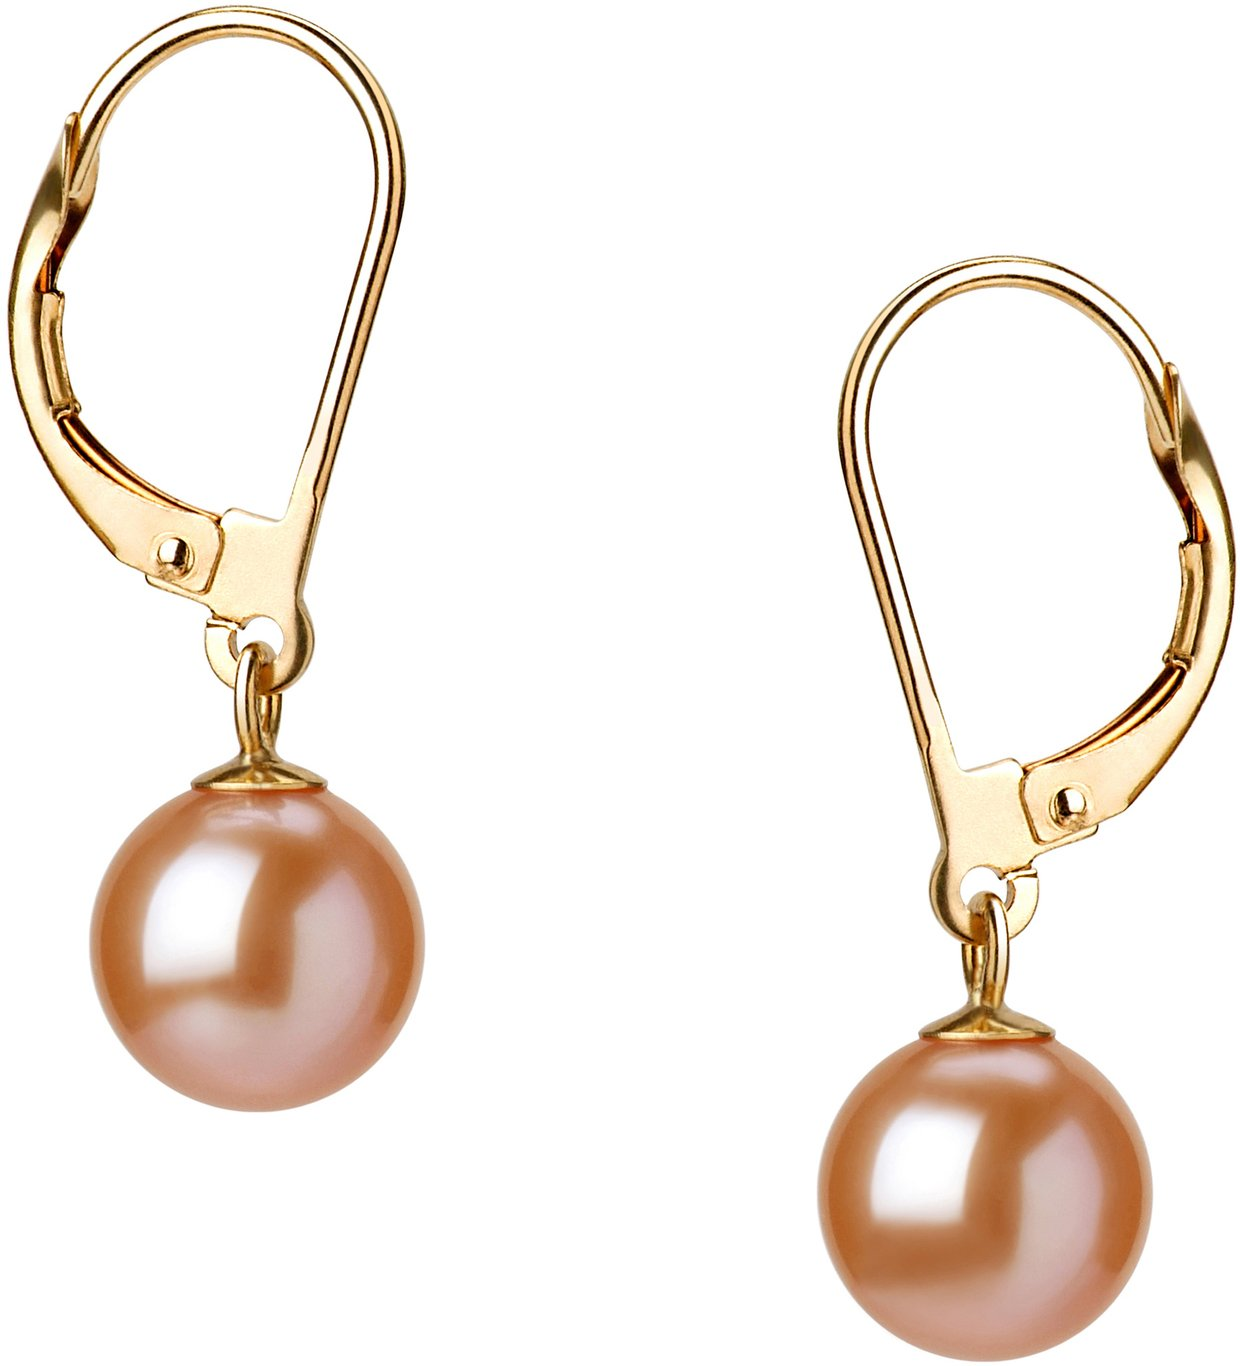 PearlsOnly - Marcella Pink 7-8mm AAAA Quality Freshwater Cultured Pearl Earring Pair